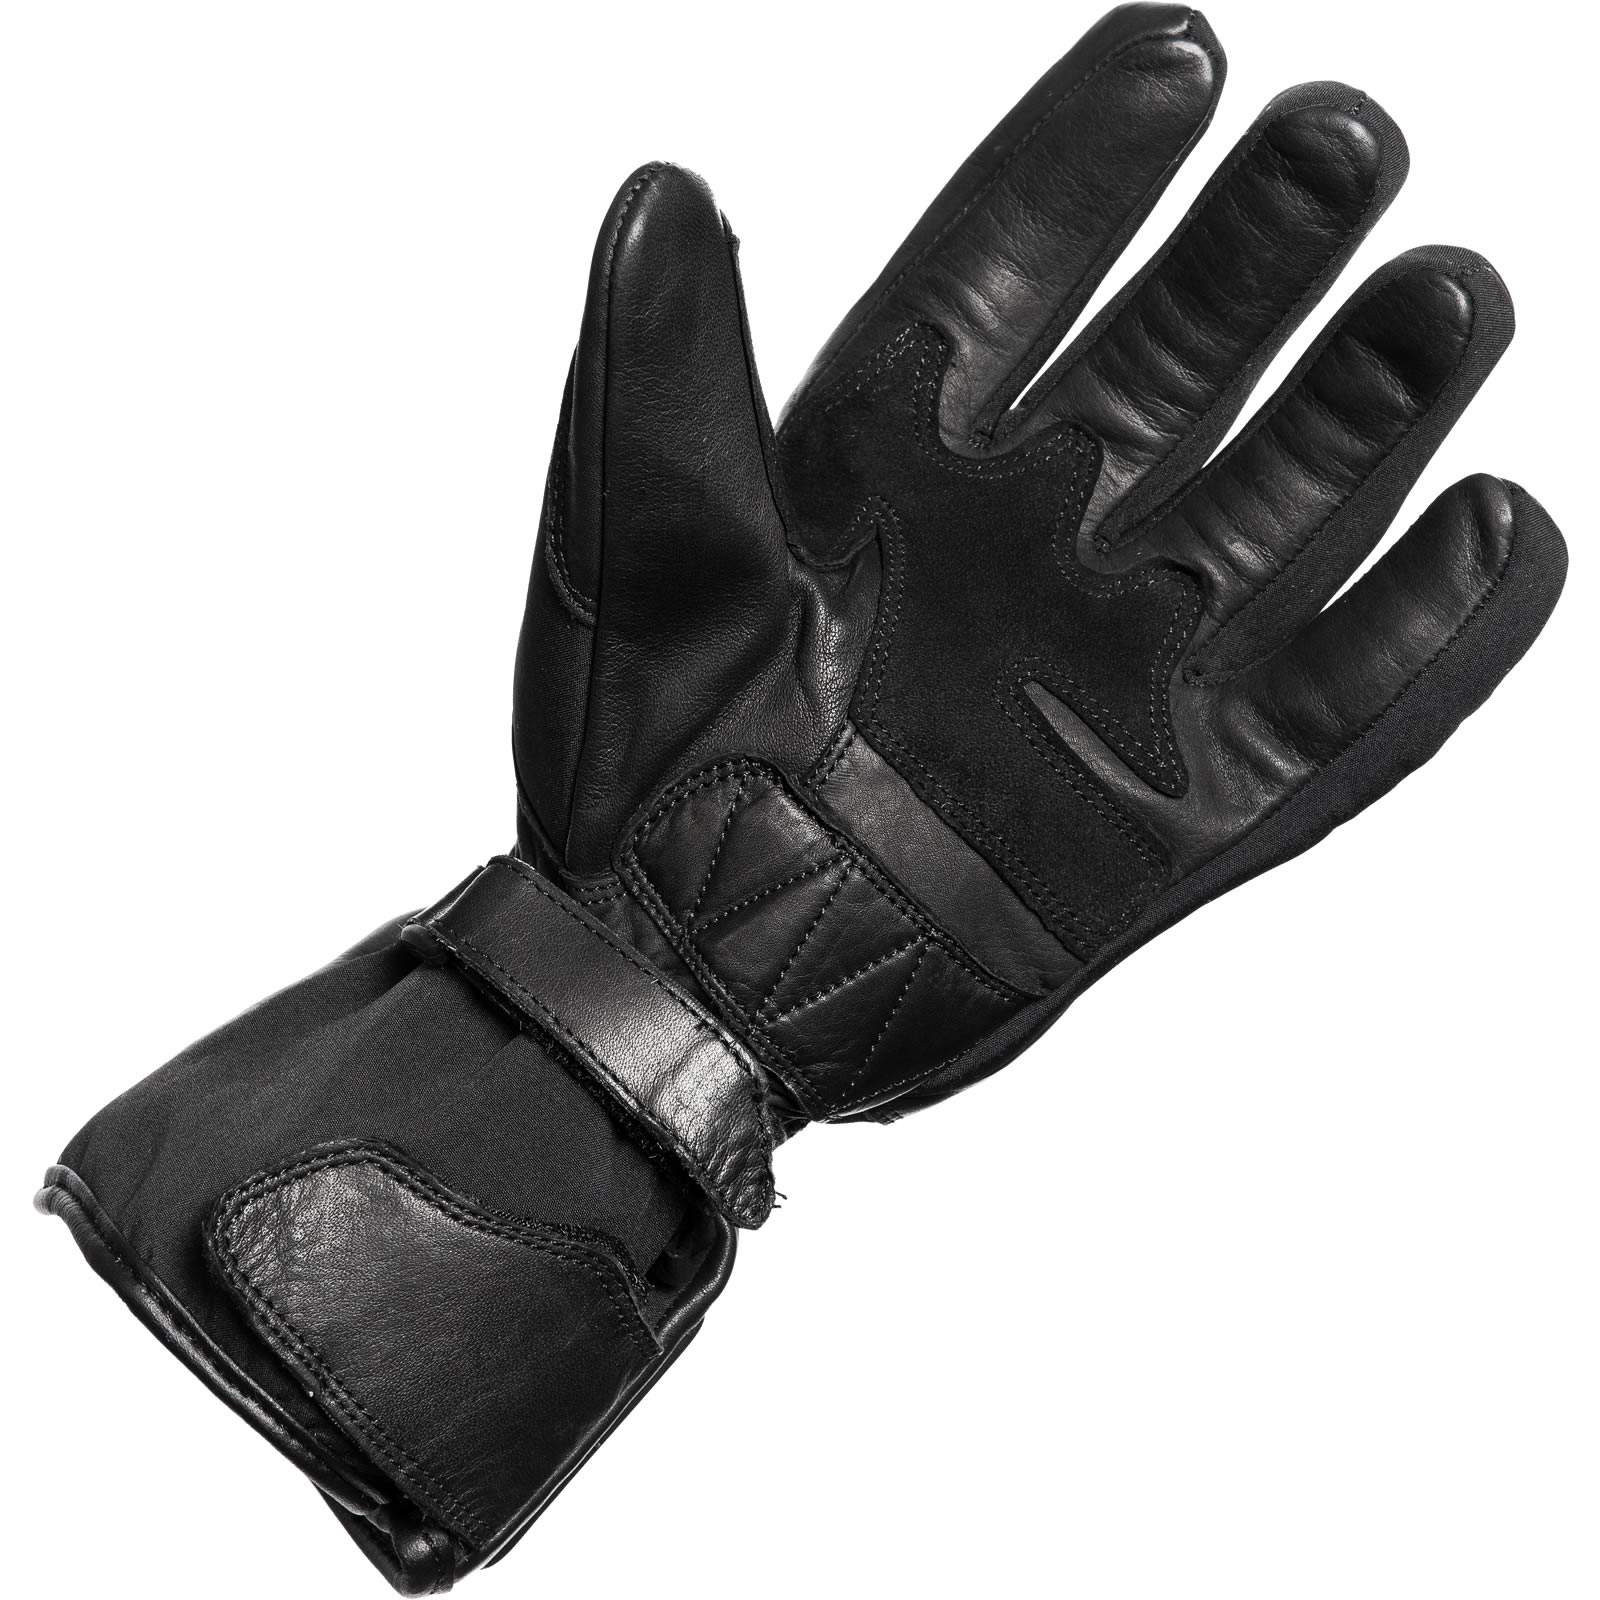 Motorcycle gloves all season - Agrius Swift Leather Motorcycle Motorbike Waterproof All Season Bike Gloves